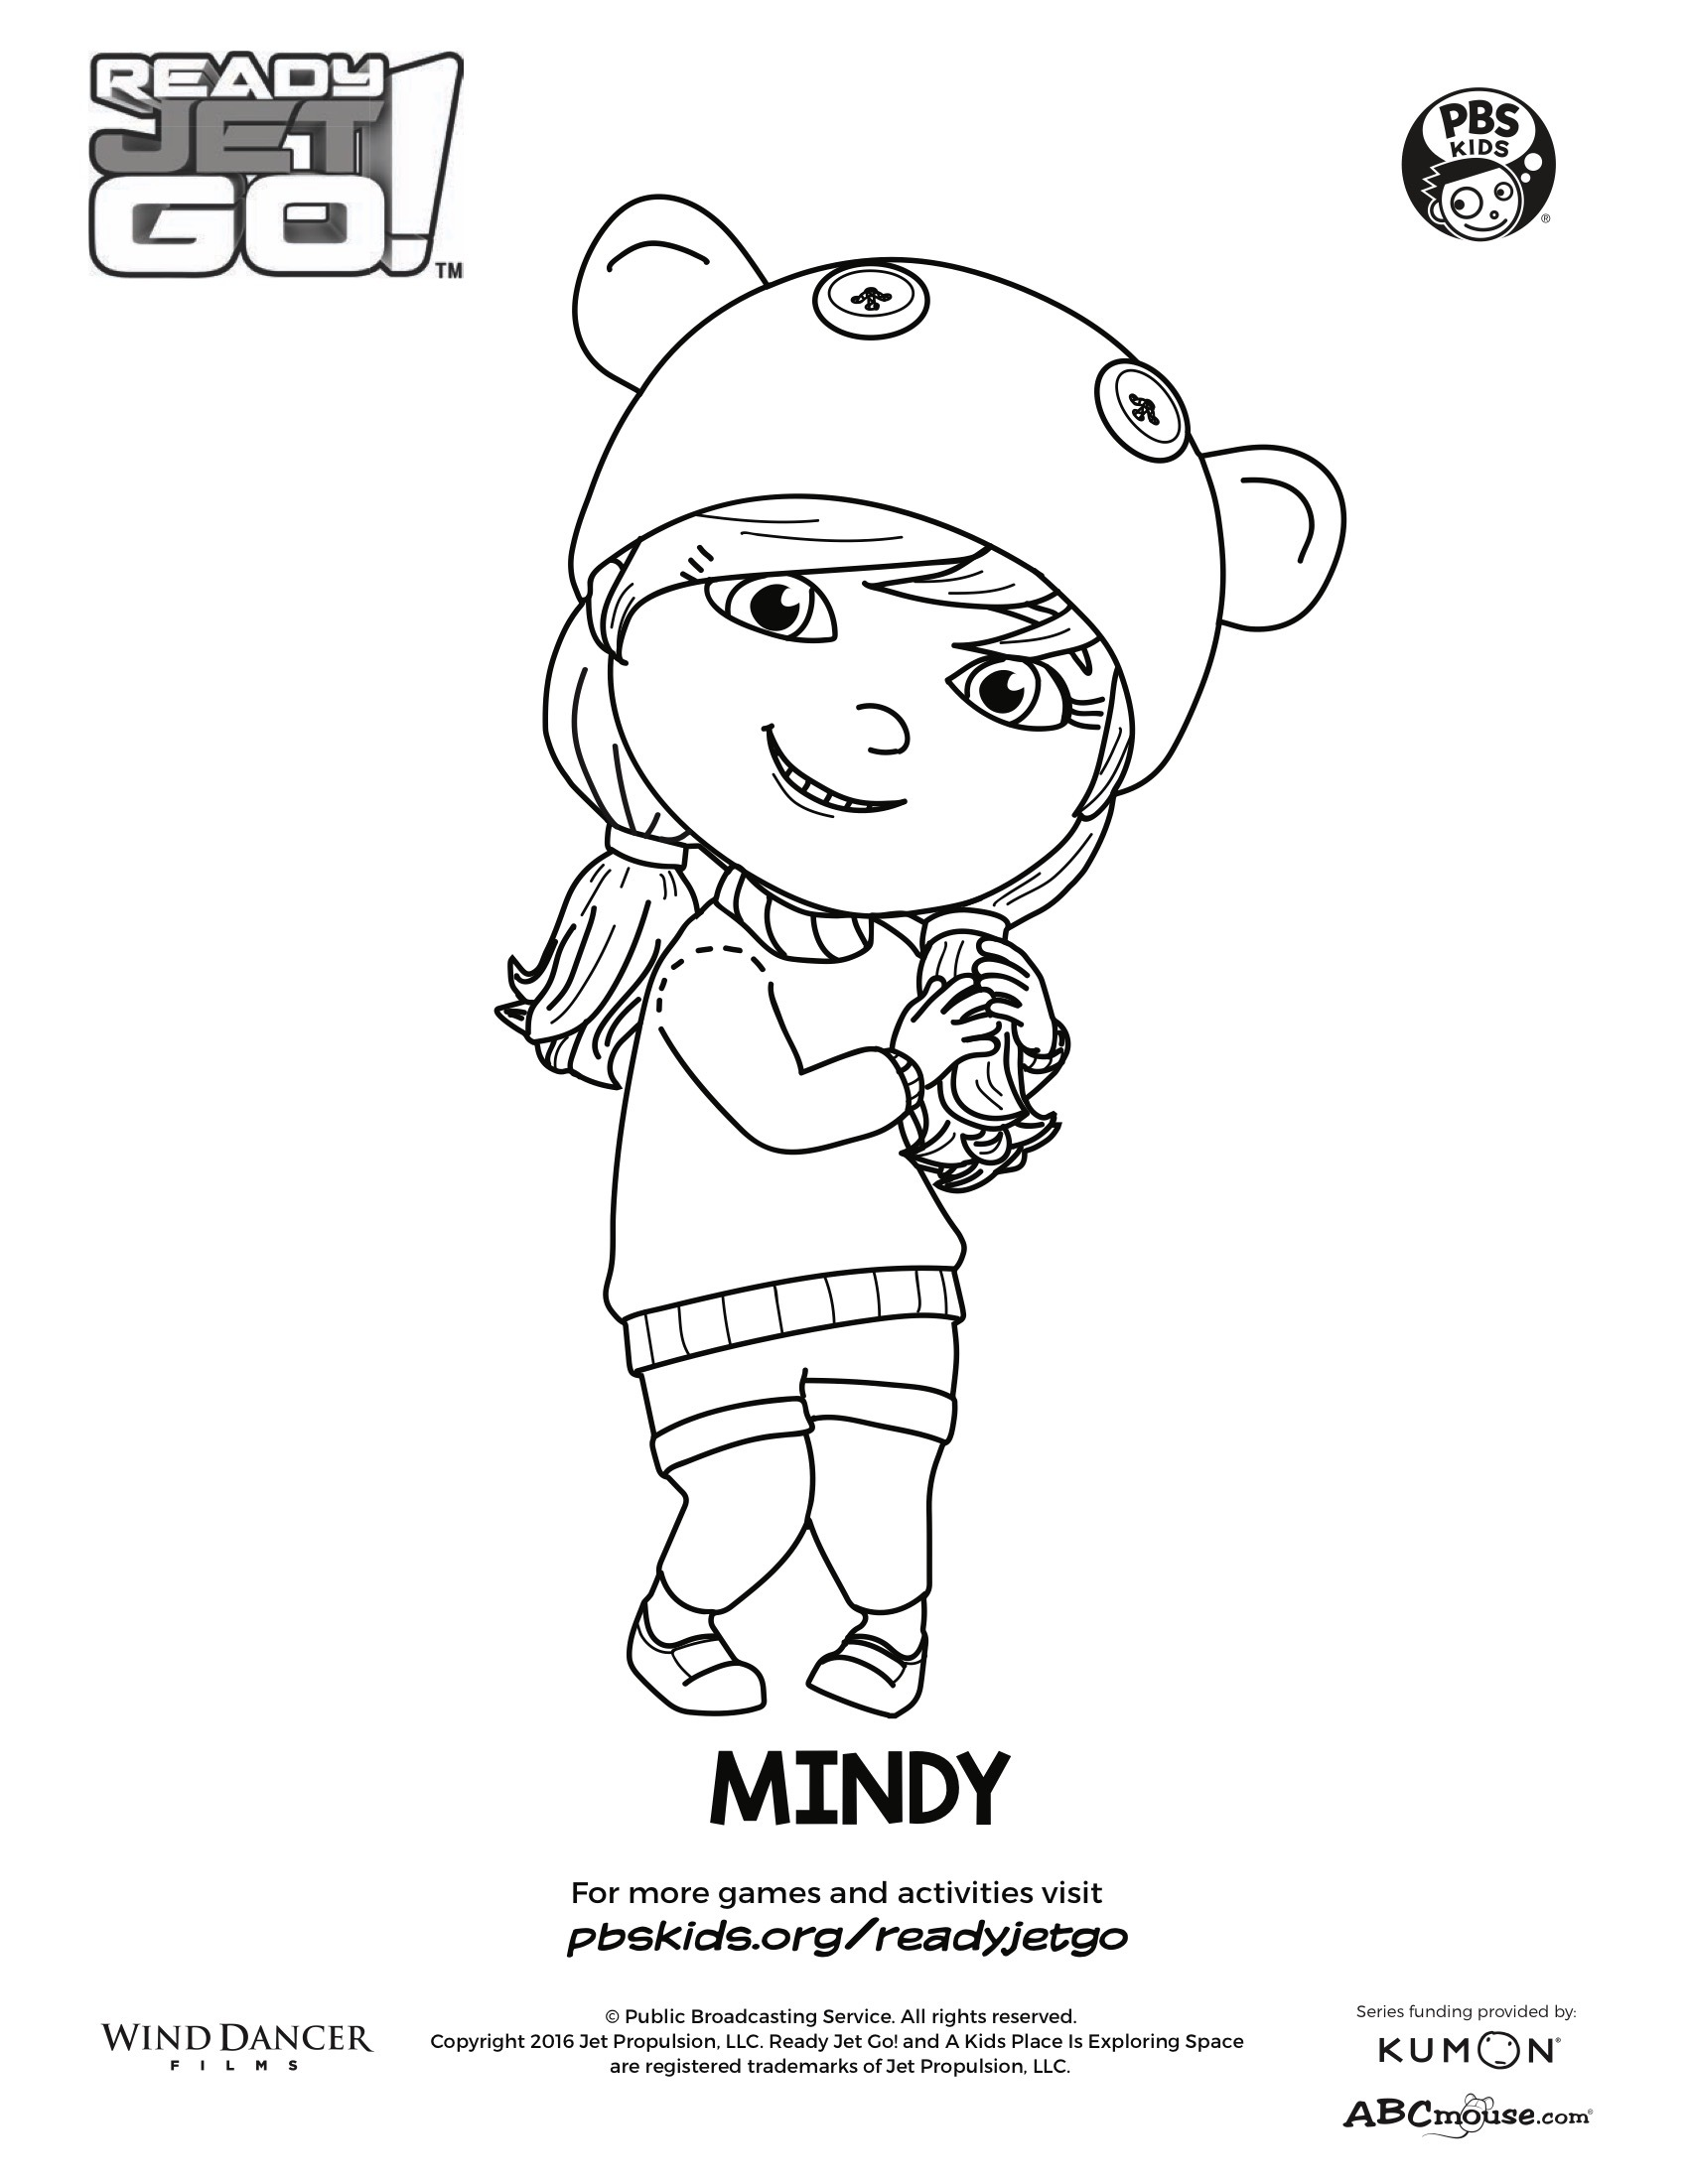 Mindy Coloring Page | Kids Coloring Pages | PBS KIDS for Parents